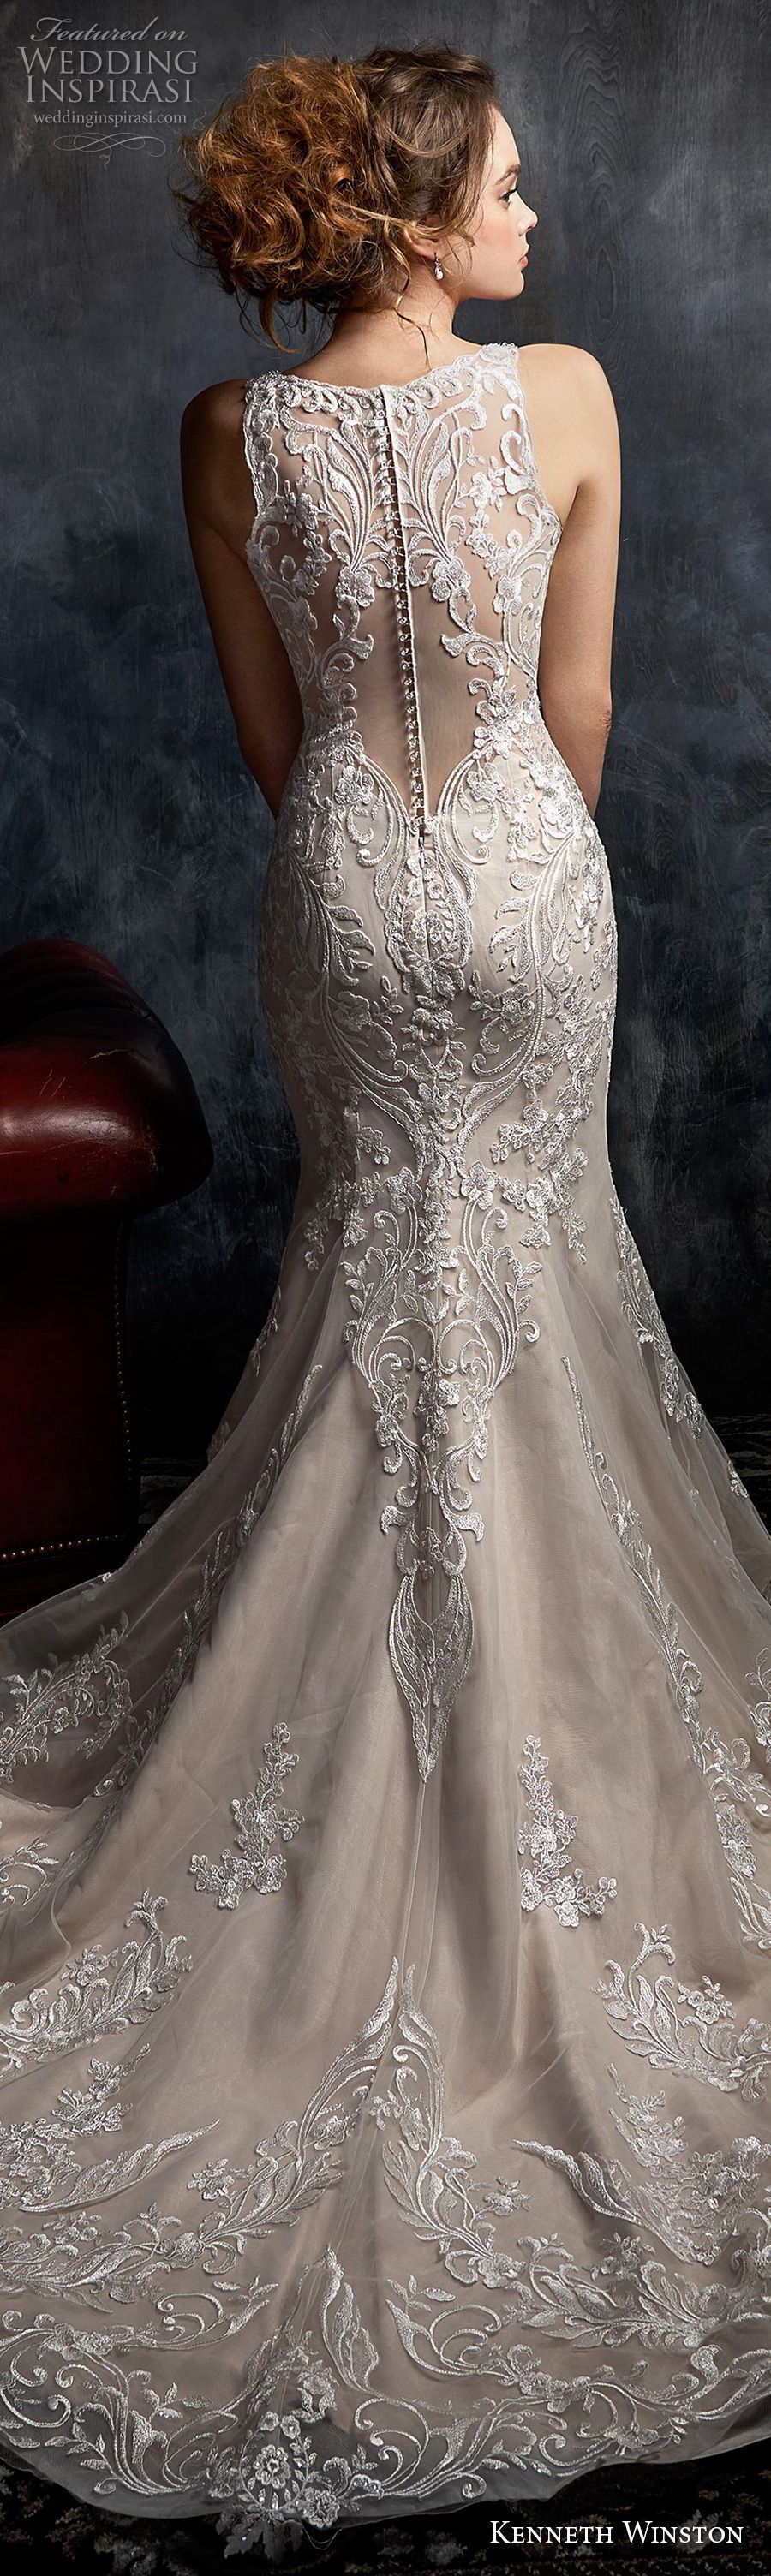 Kenneth Winston Couture Wedding Dresses — Fall 2017 Bridal